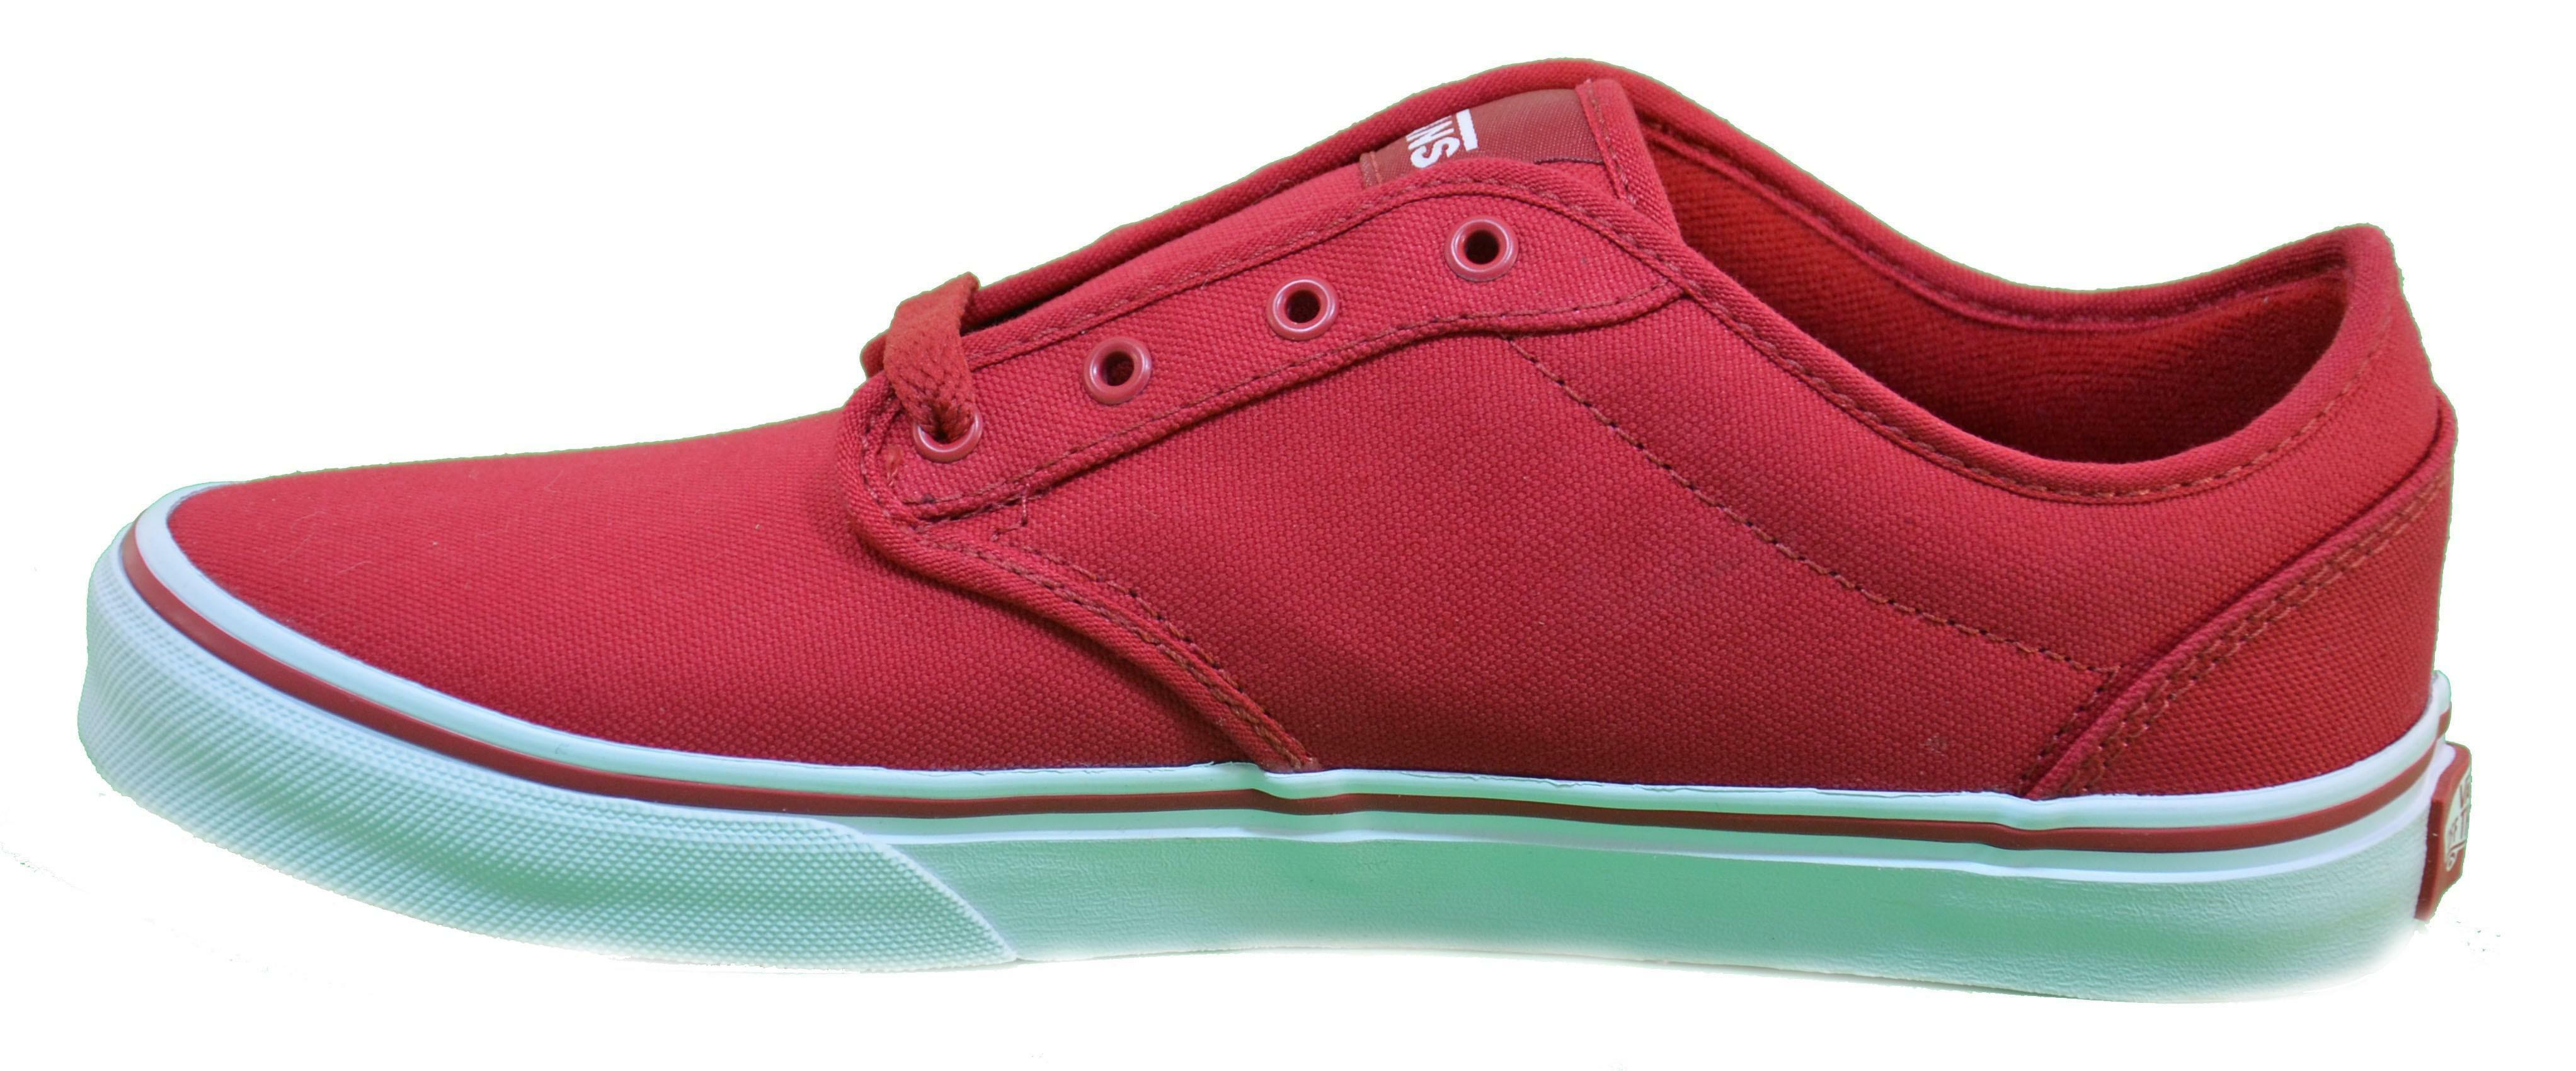 Canvas Chaussures Vans ZNR5GH Atwood VANS Atwood pour eBay enfants Red qp7xZ